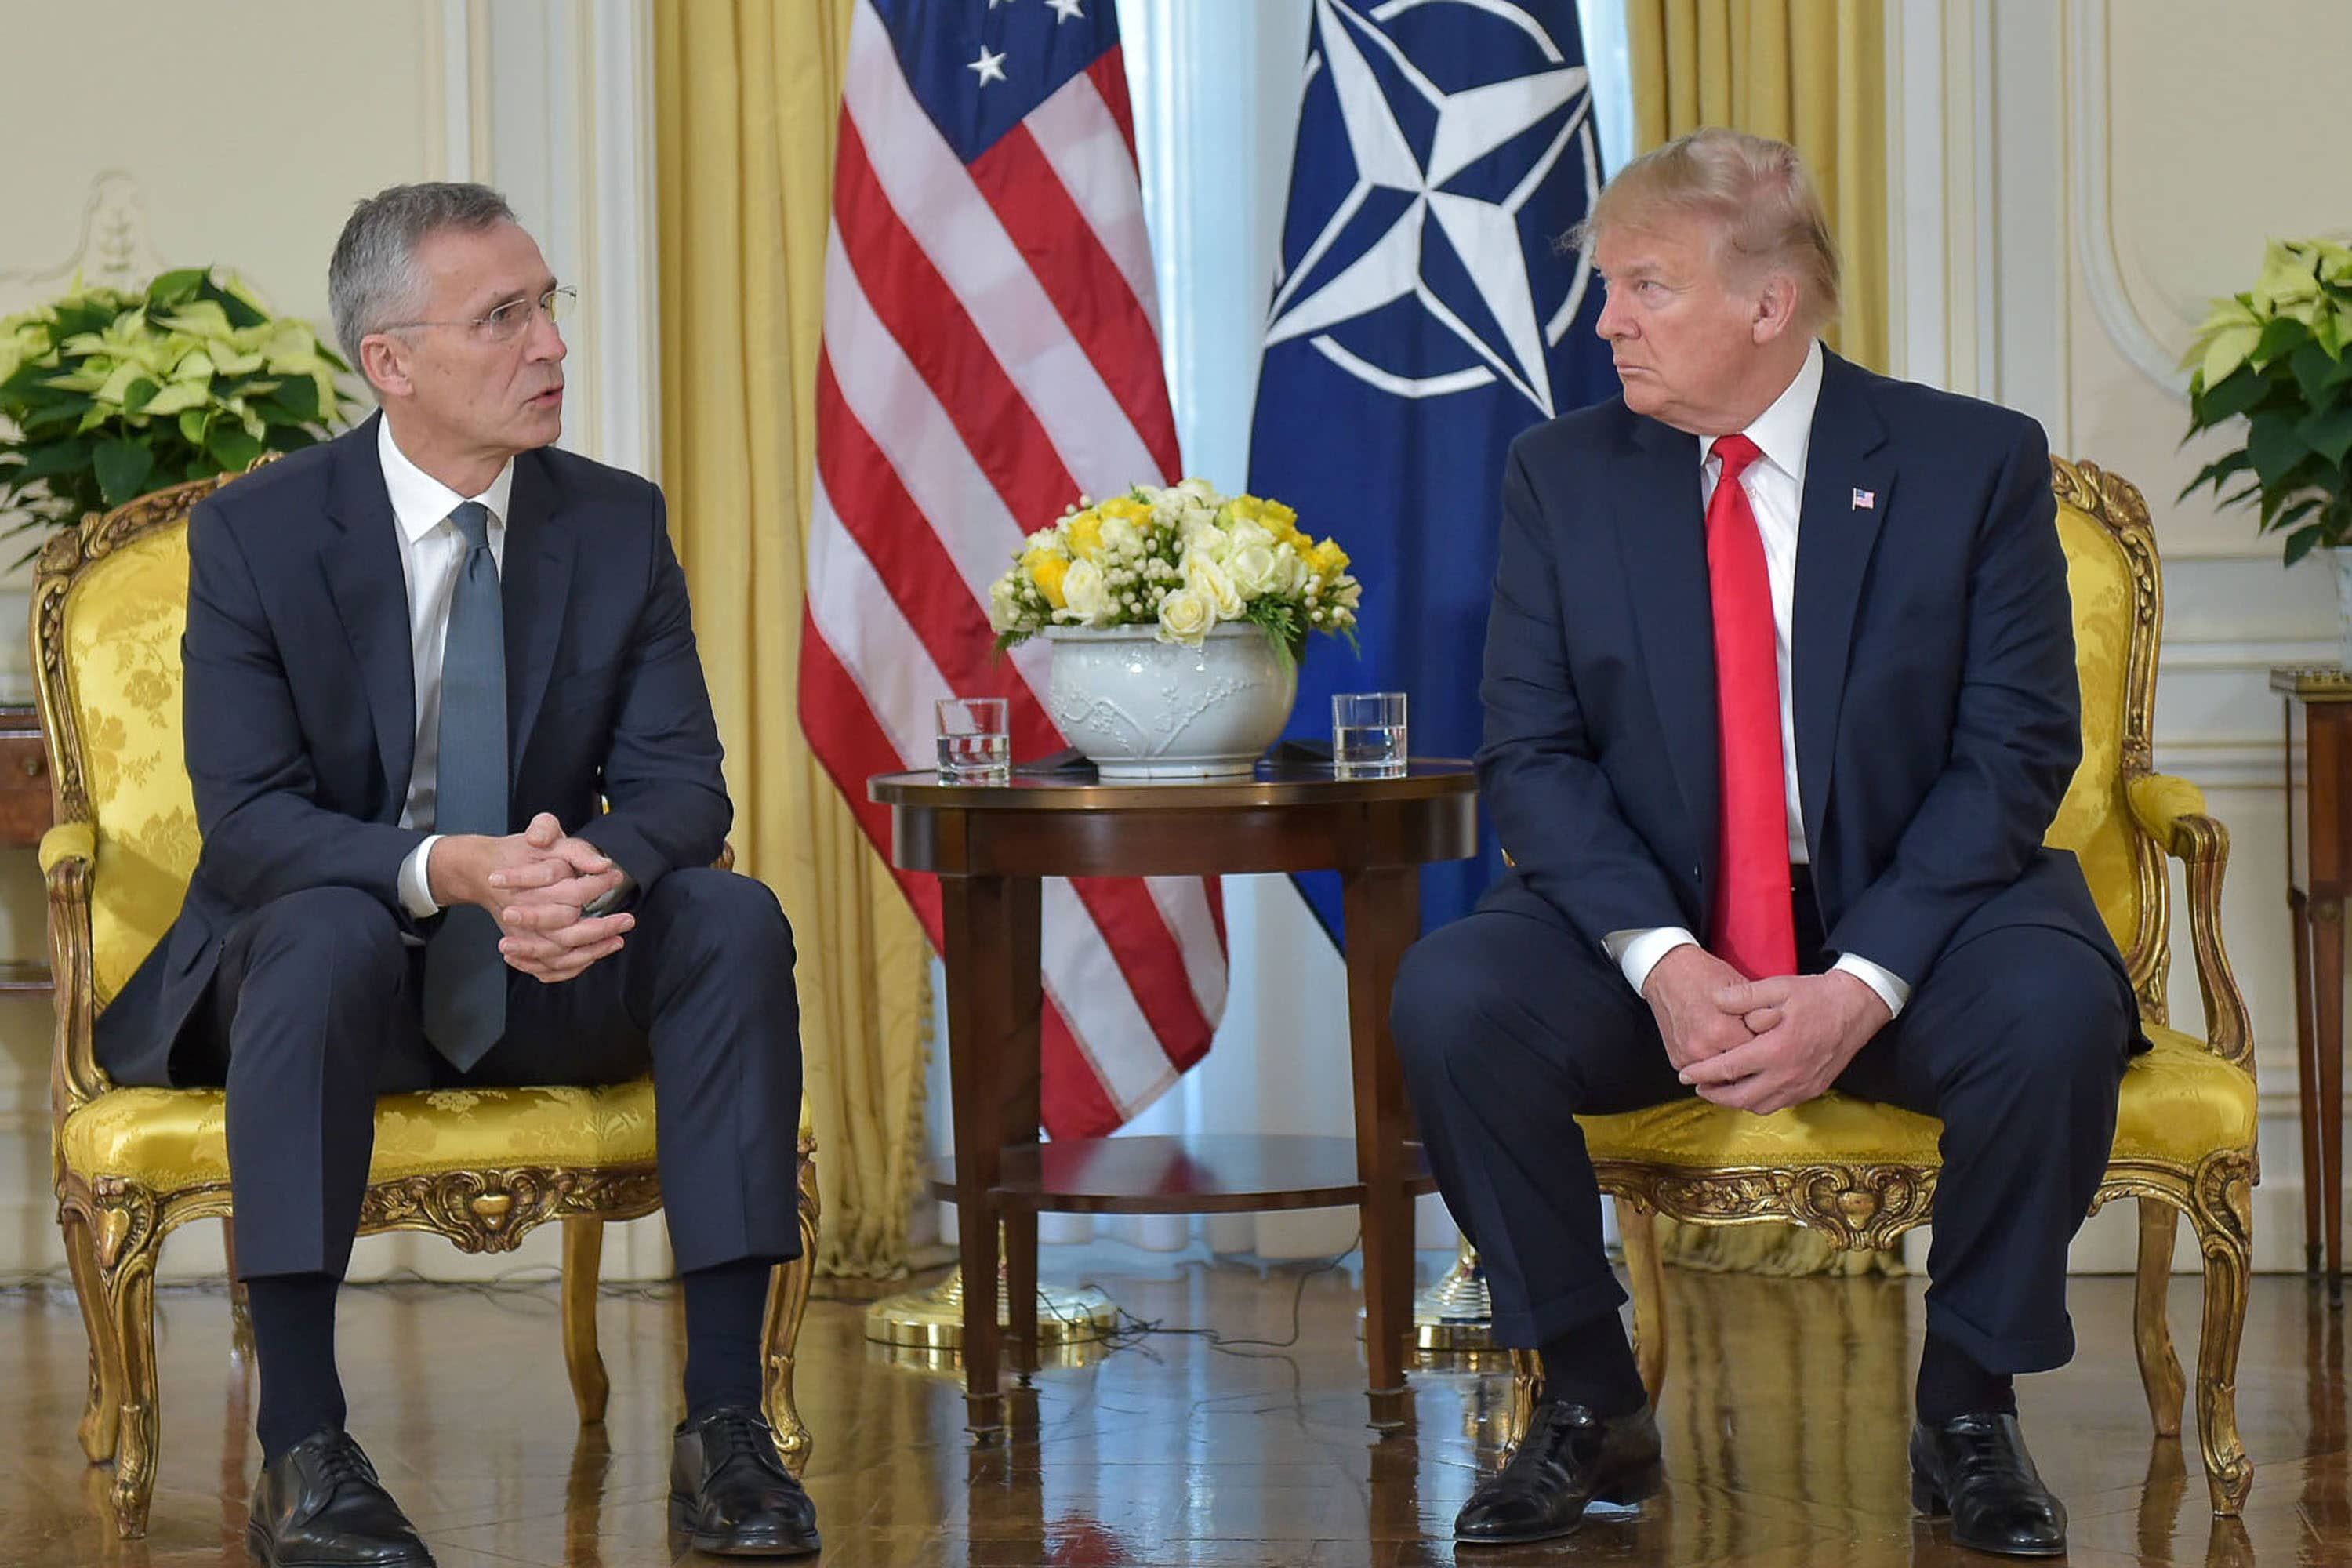 During the NATO summit, the US needs the EU to focus on trade, not just defense spending